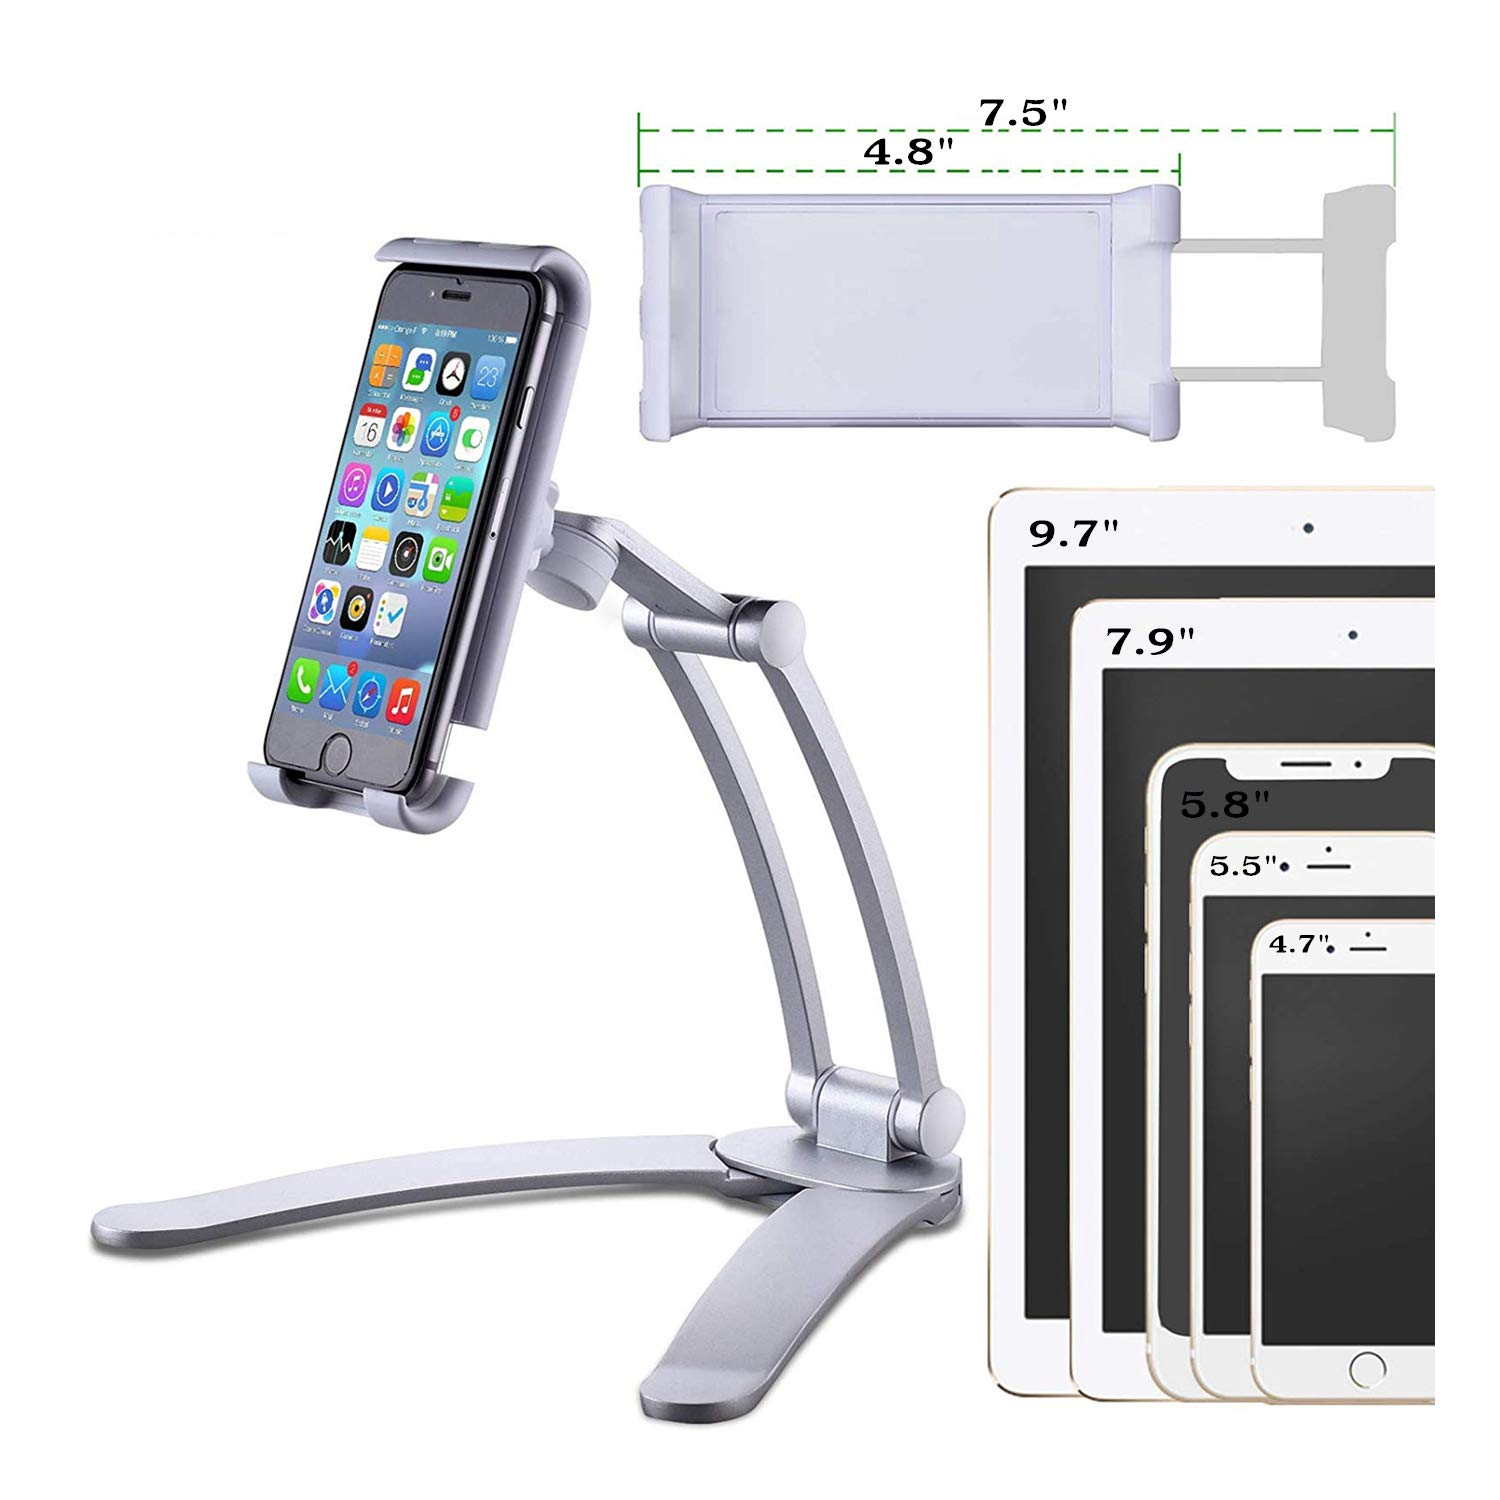 JaxTec Tablet Stand 2-in-1 iPad Kitchen Wall Mount/Under Cabinet Holder -  Perfect for Recipe Reading on Countertop or…- Buy Online in Gibraltar at  gibraltar.desertcart.com. ProductId : 160465456.